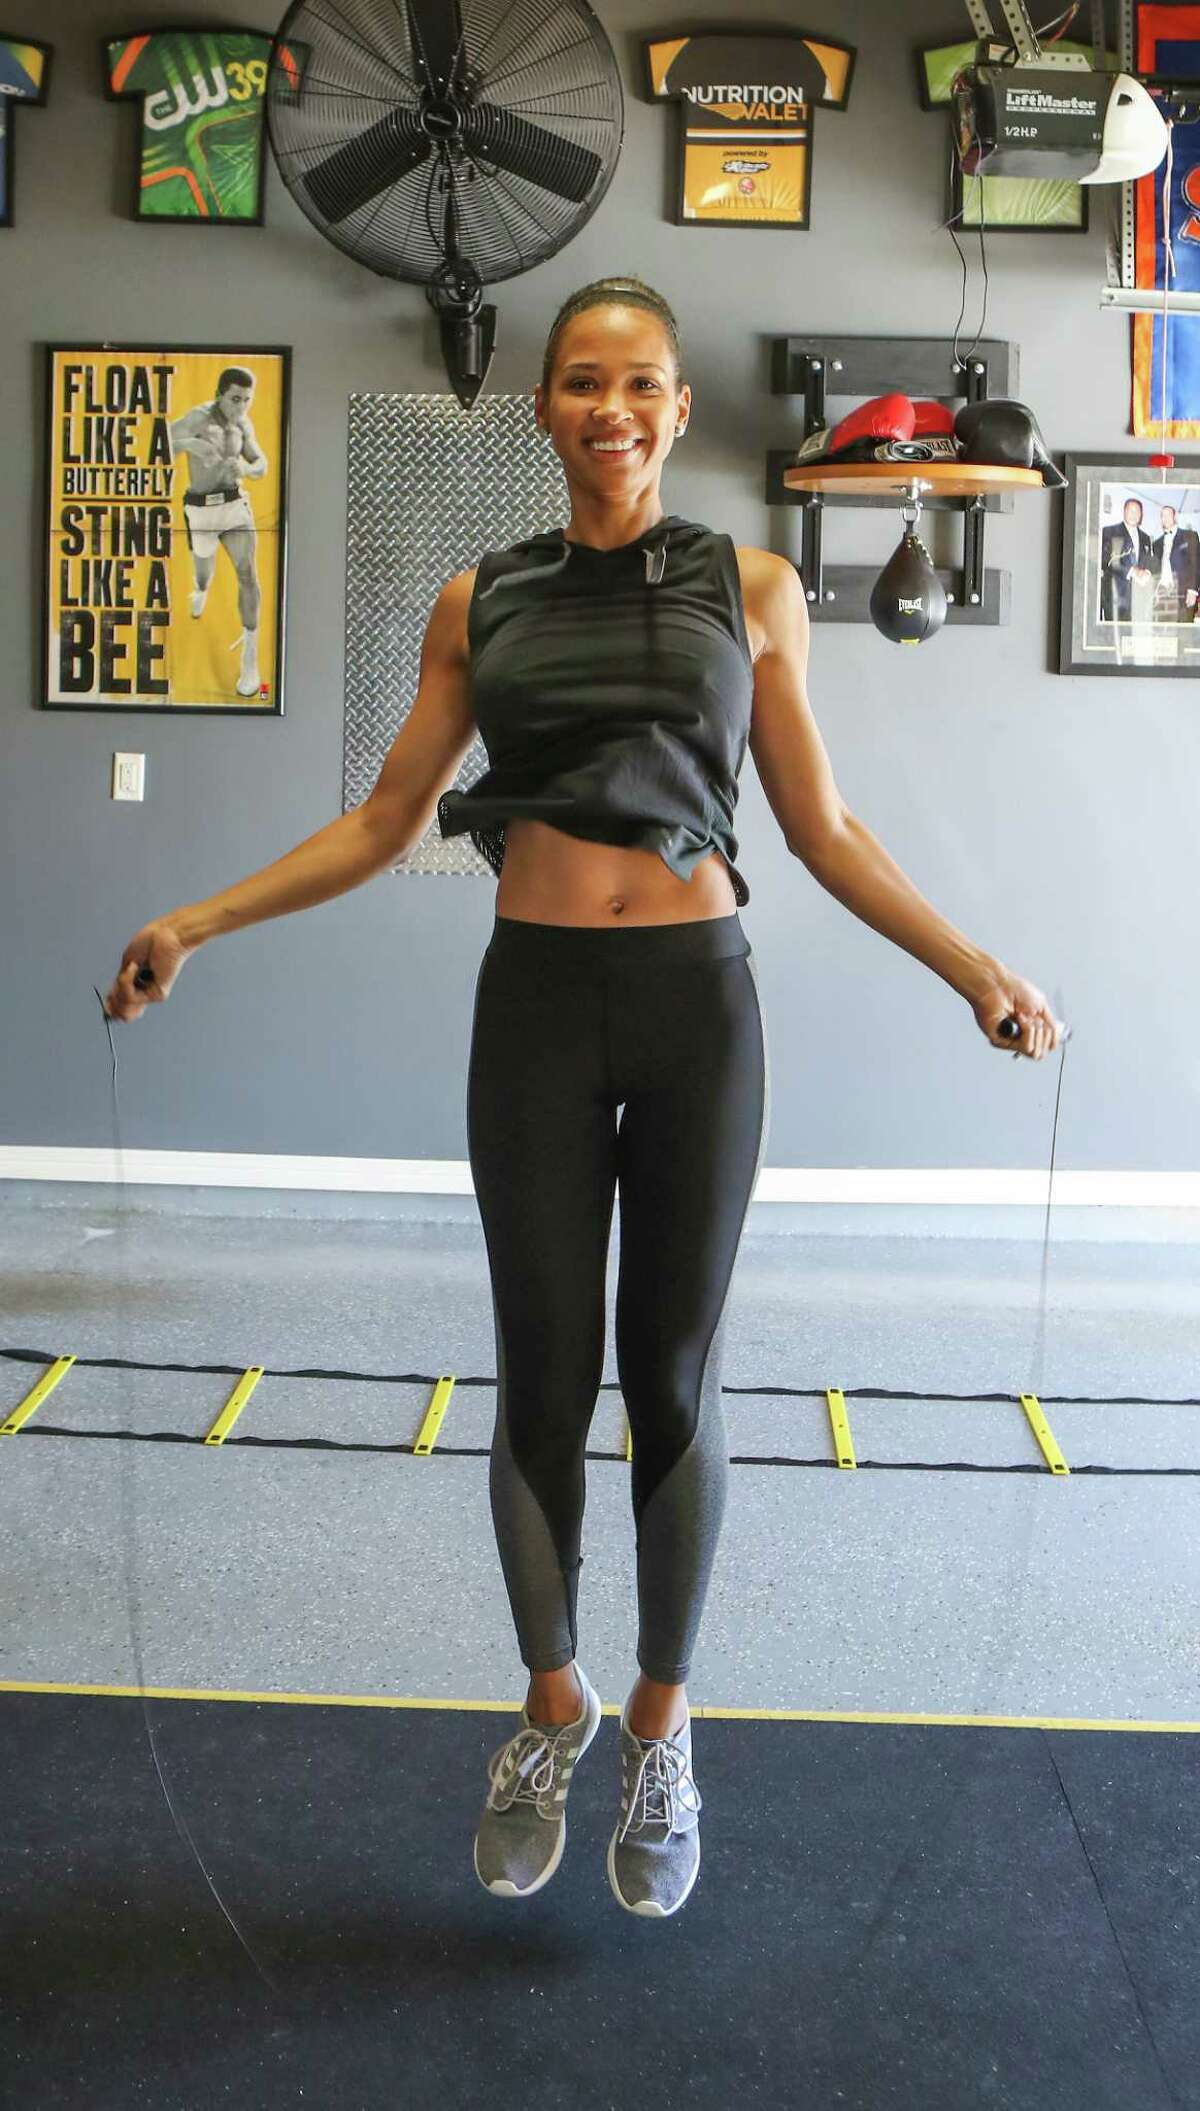 KHOU 11 Anchor Mia Gradney decided to turn her garage into a gym. She has a weight bench, a spin bike and other equipment. Read her story.